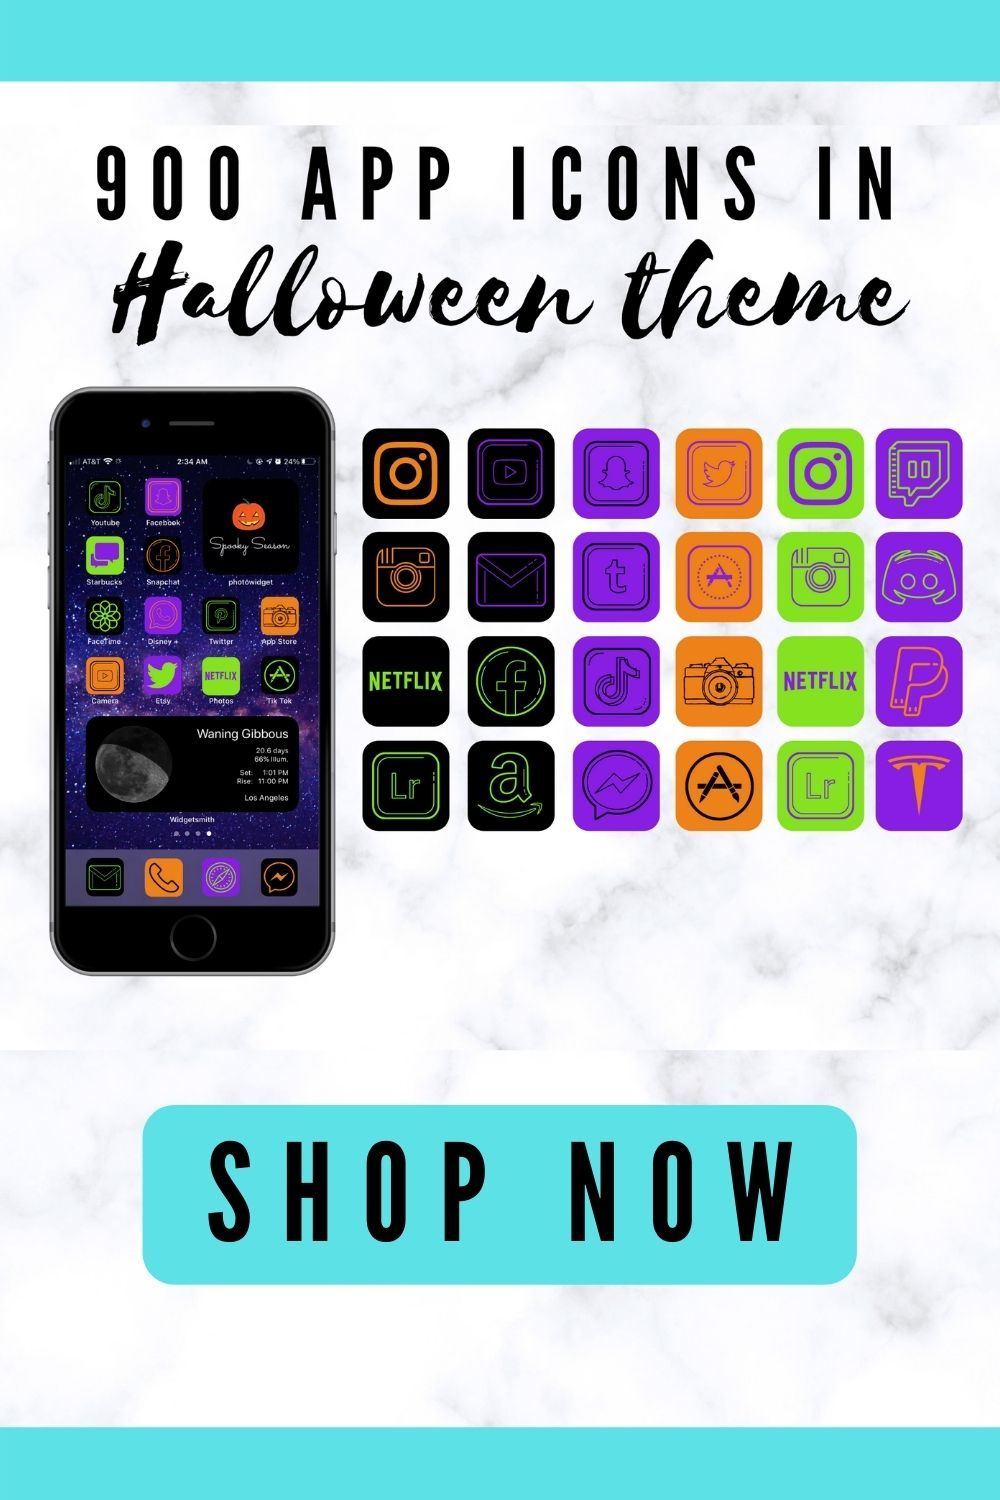 App icons Halloween them for iPhone, iOS 14 home screen ideas